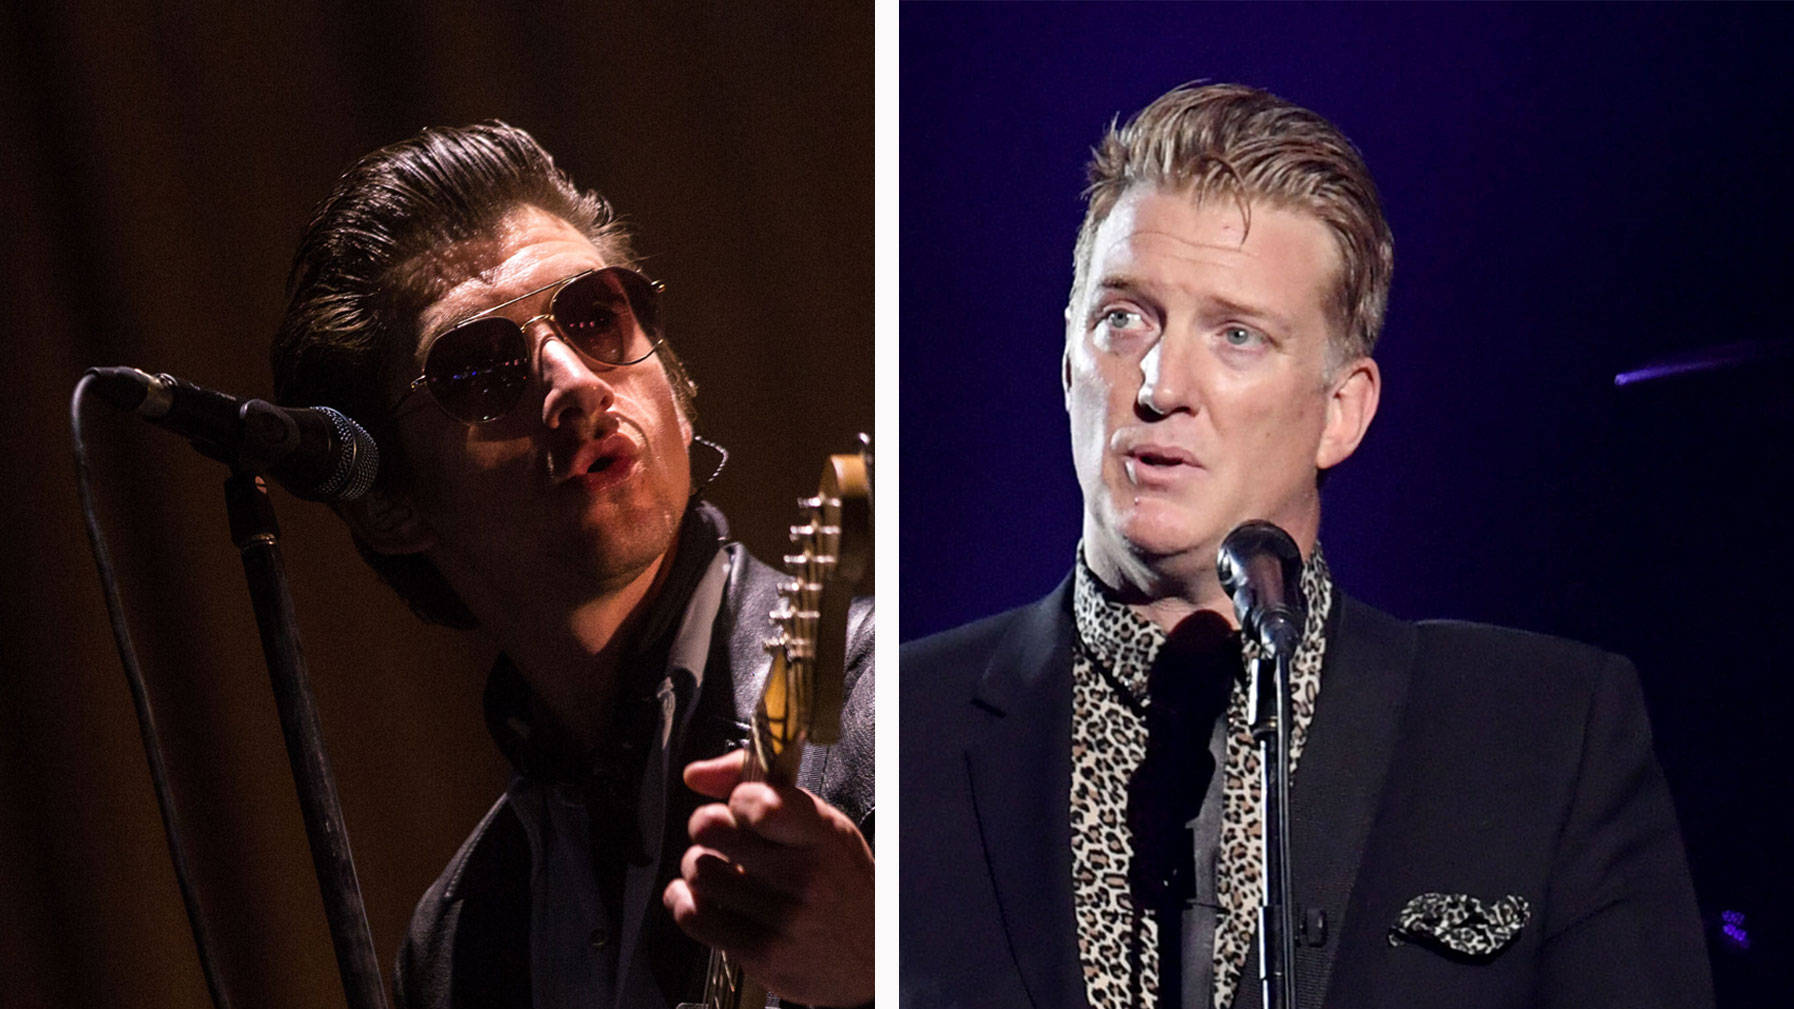 VIDEO: Why Arctic Monkeys owe their sound to QOTSA's Josh Homme...